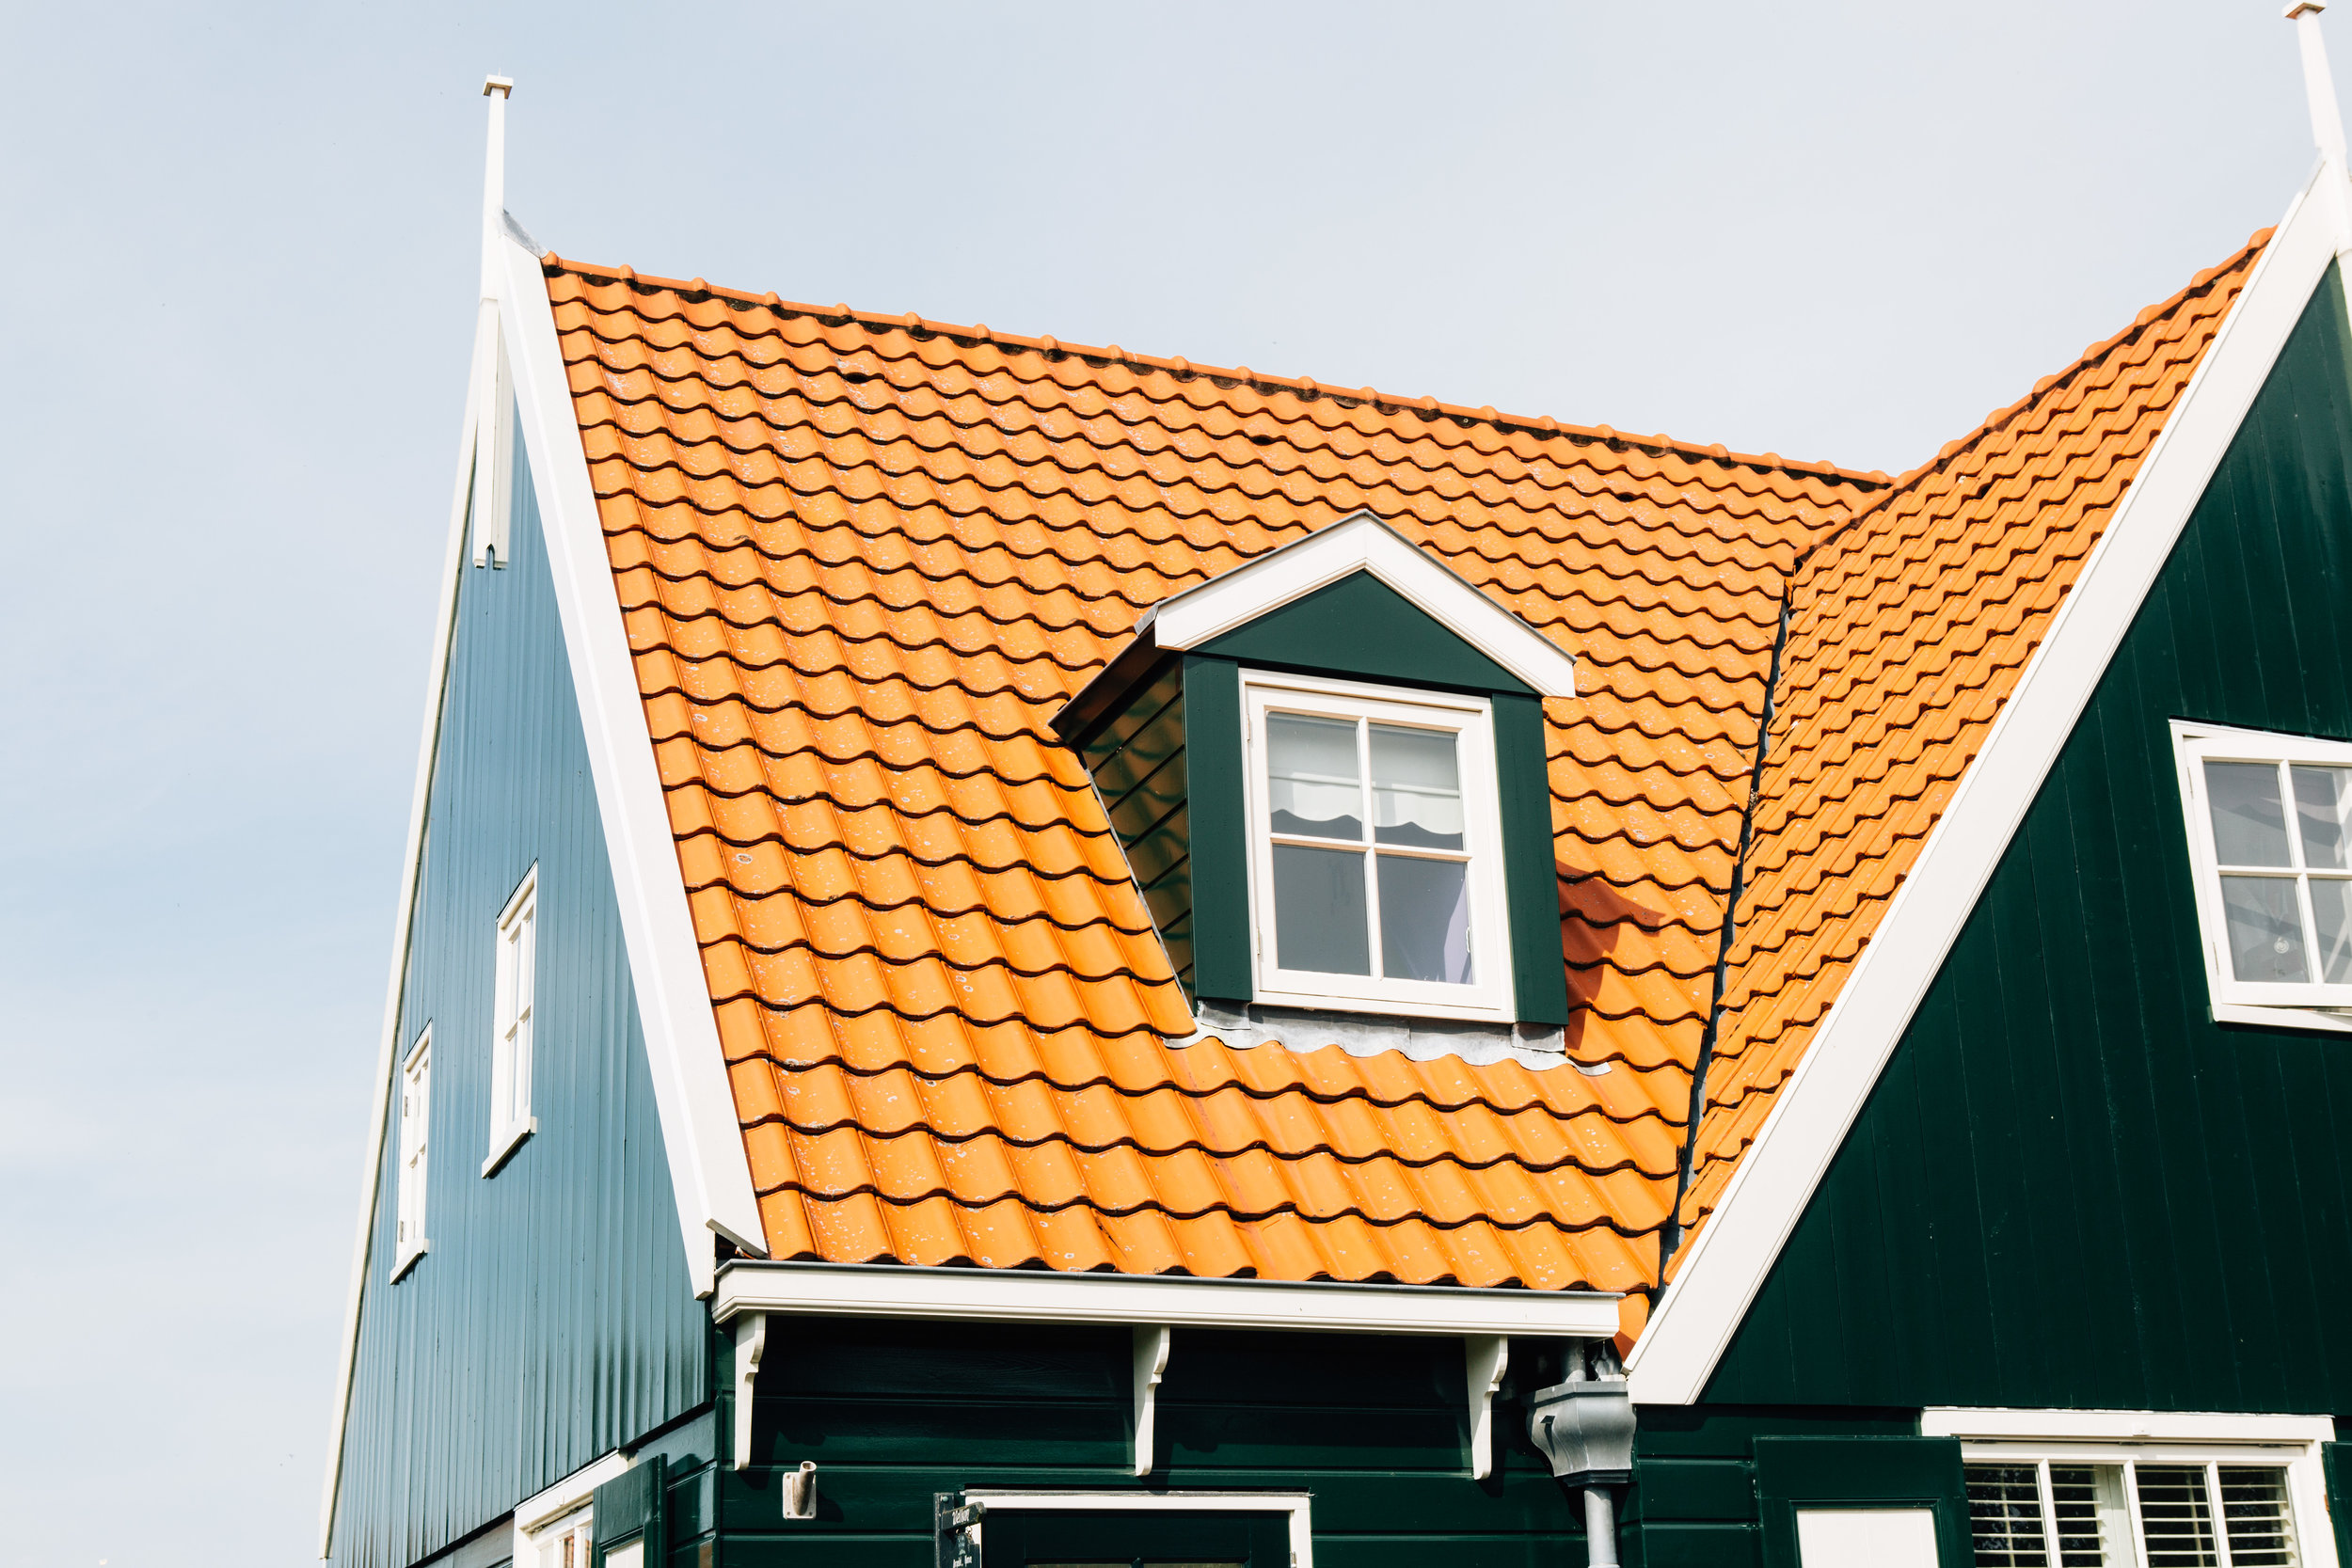 Volendam Netherlands Architecture Design Toronto Food Travel Photographers - Suech and Beck